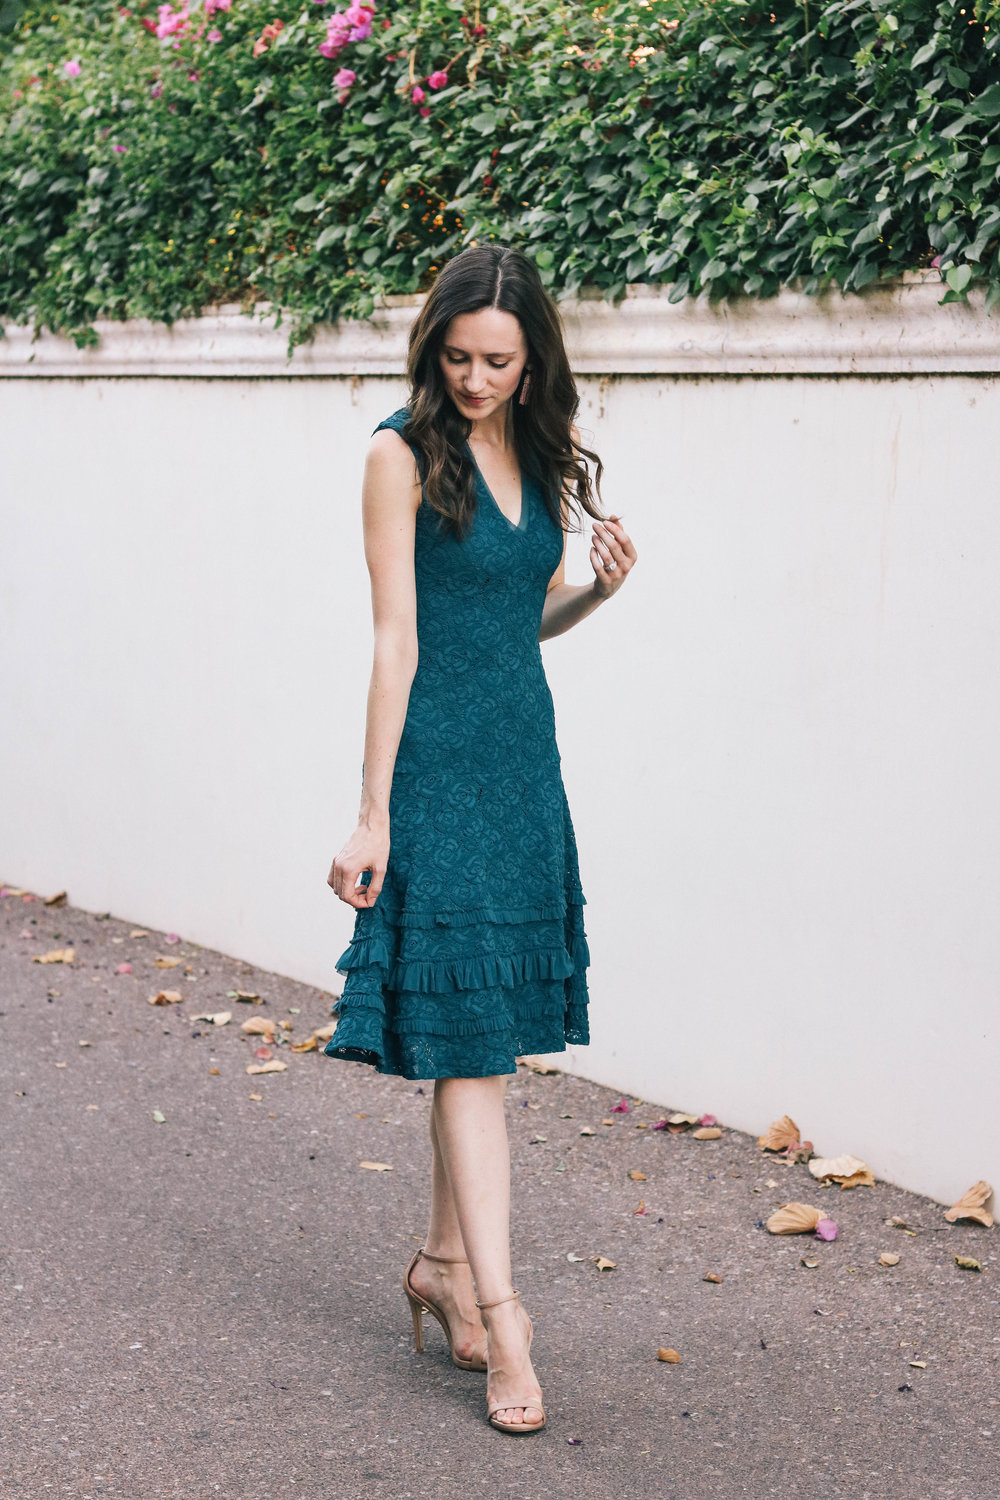 bb-teal-lace-dress-002 (1 of 1).jpg